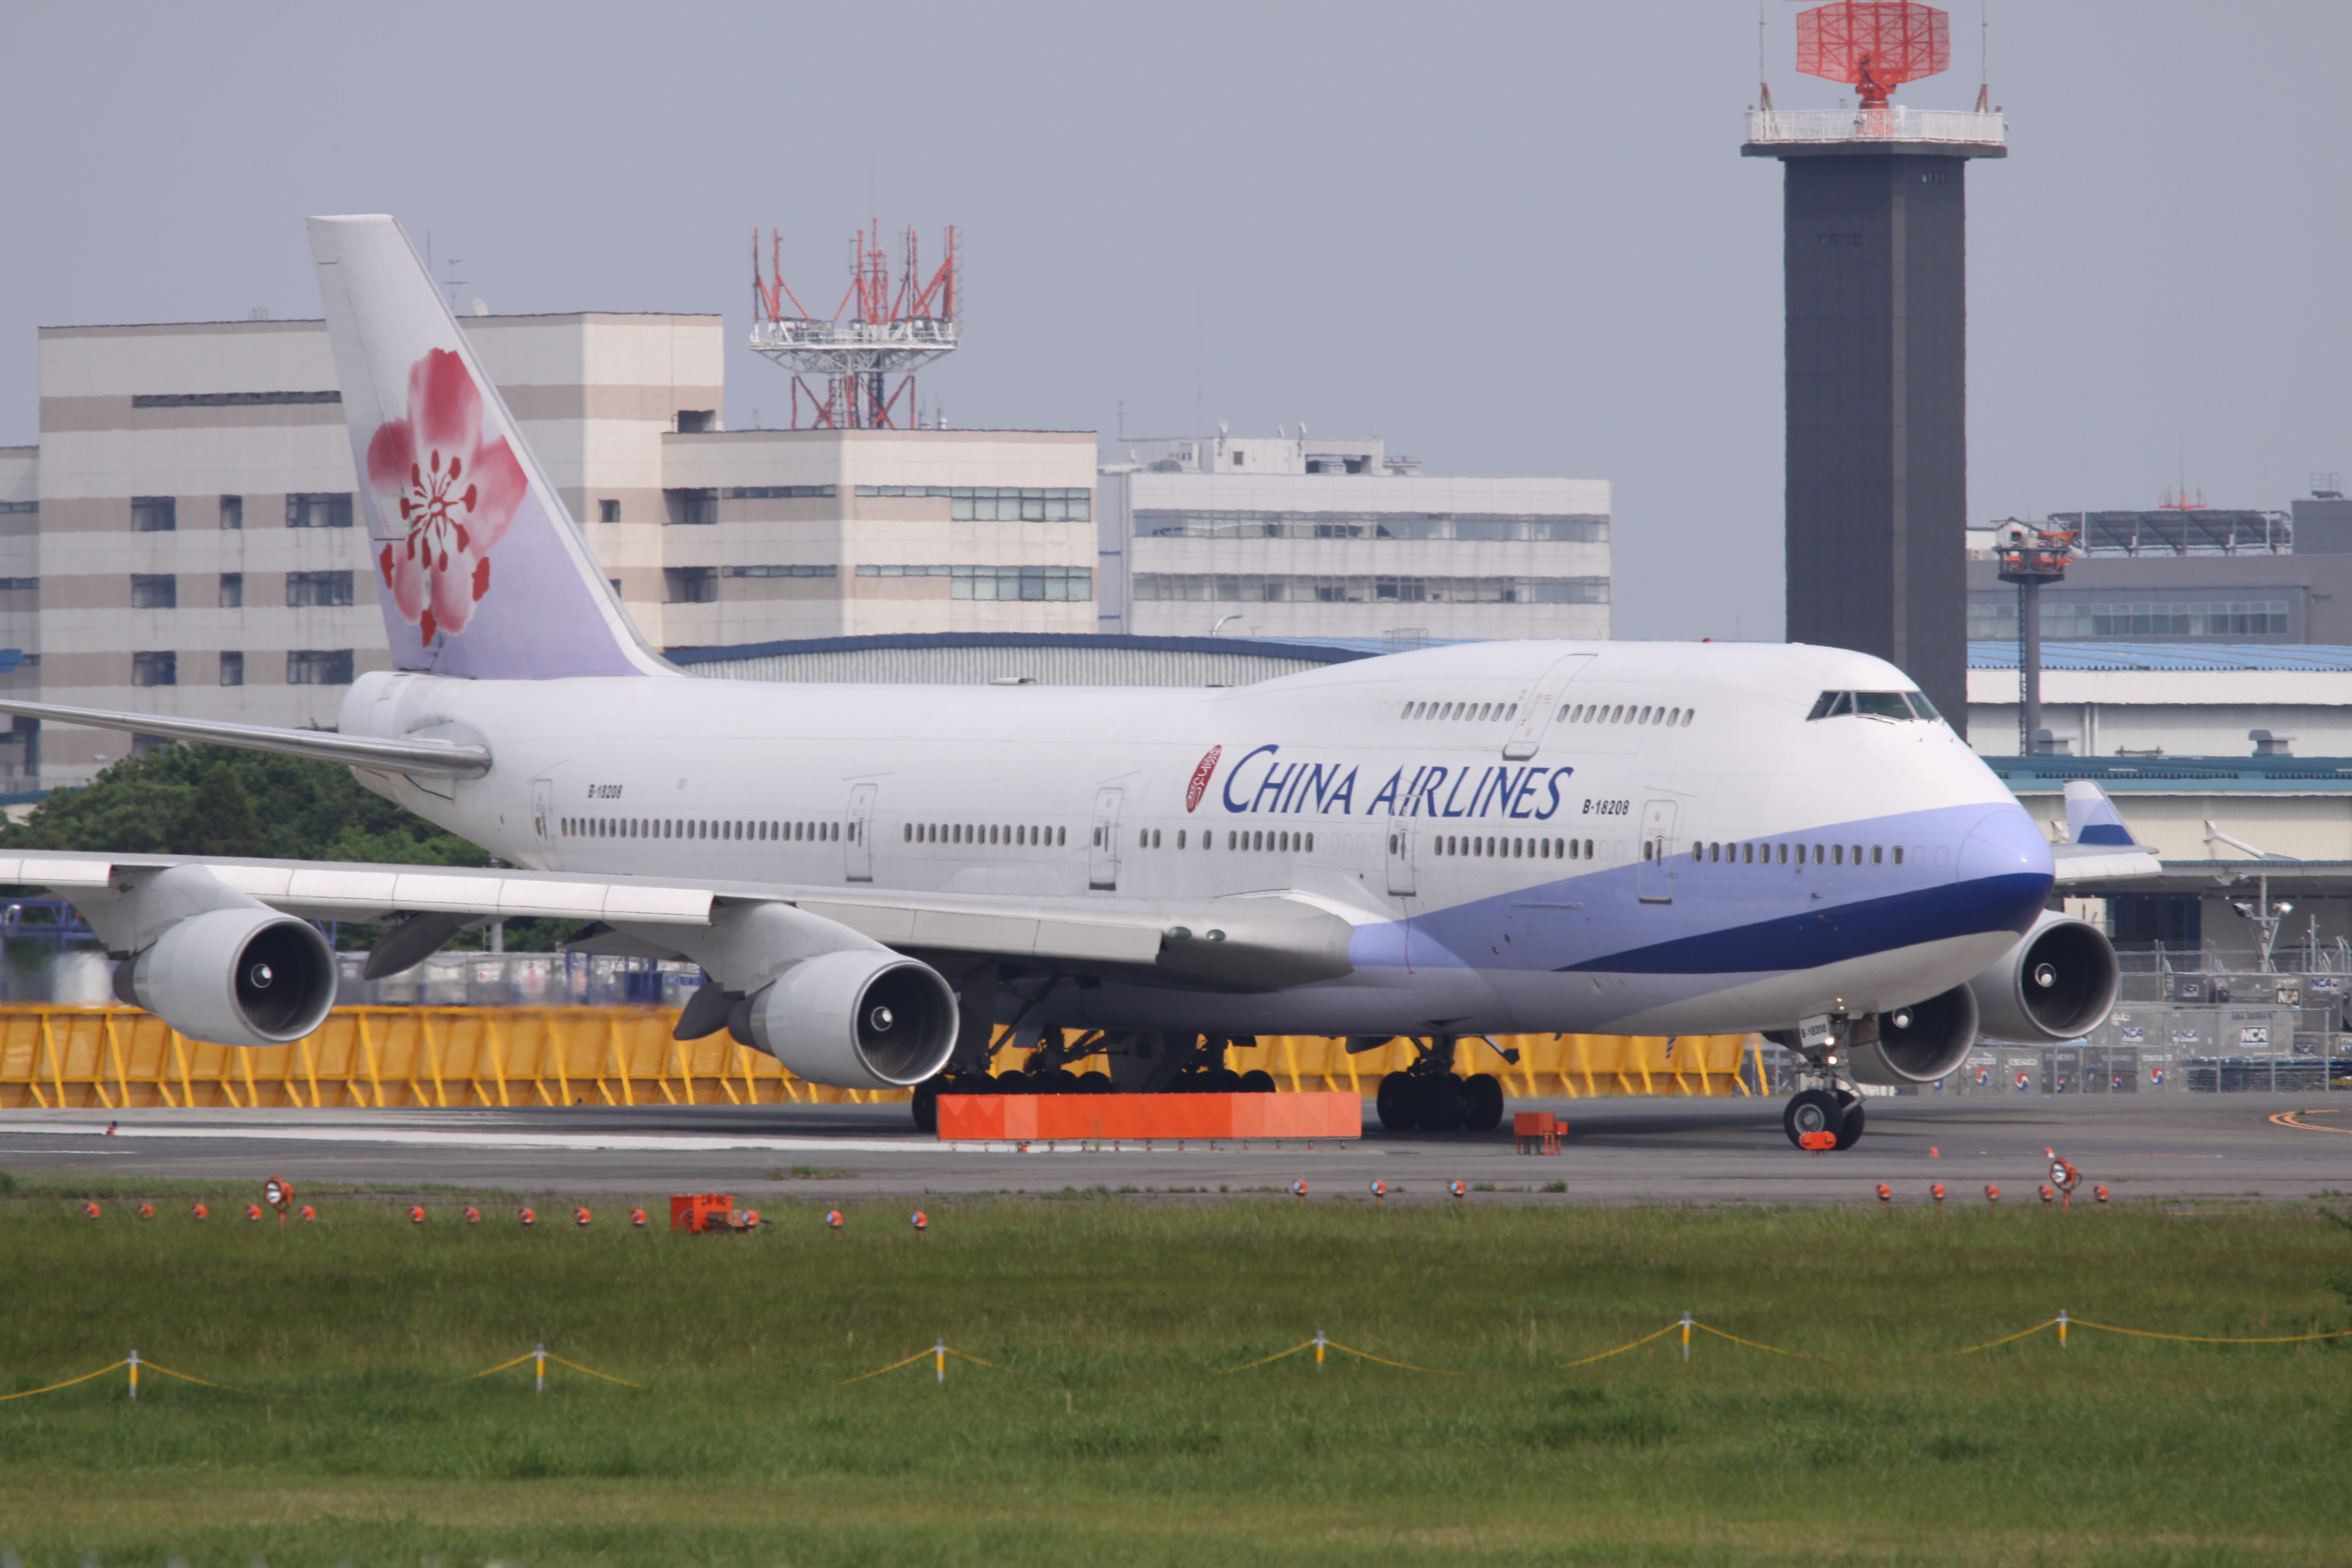 File:China Airlines B747-400(B-18208) (3517750397).